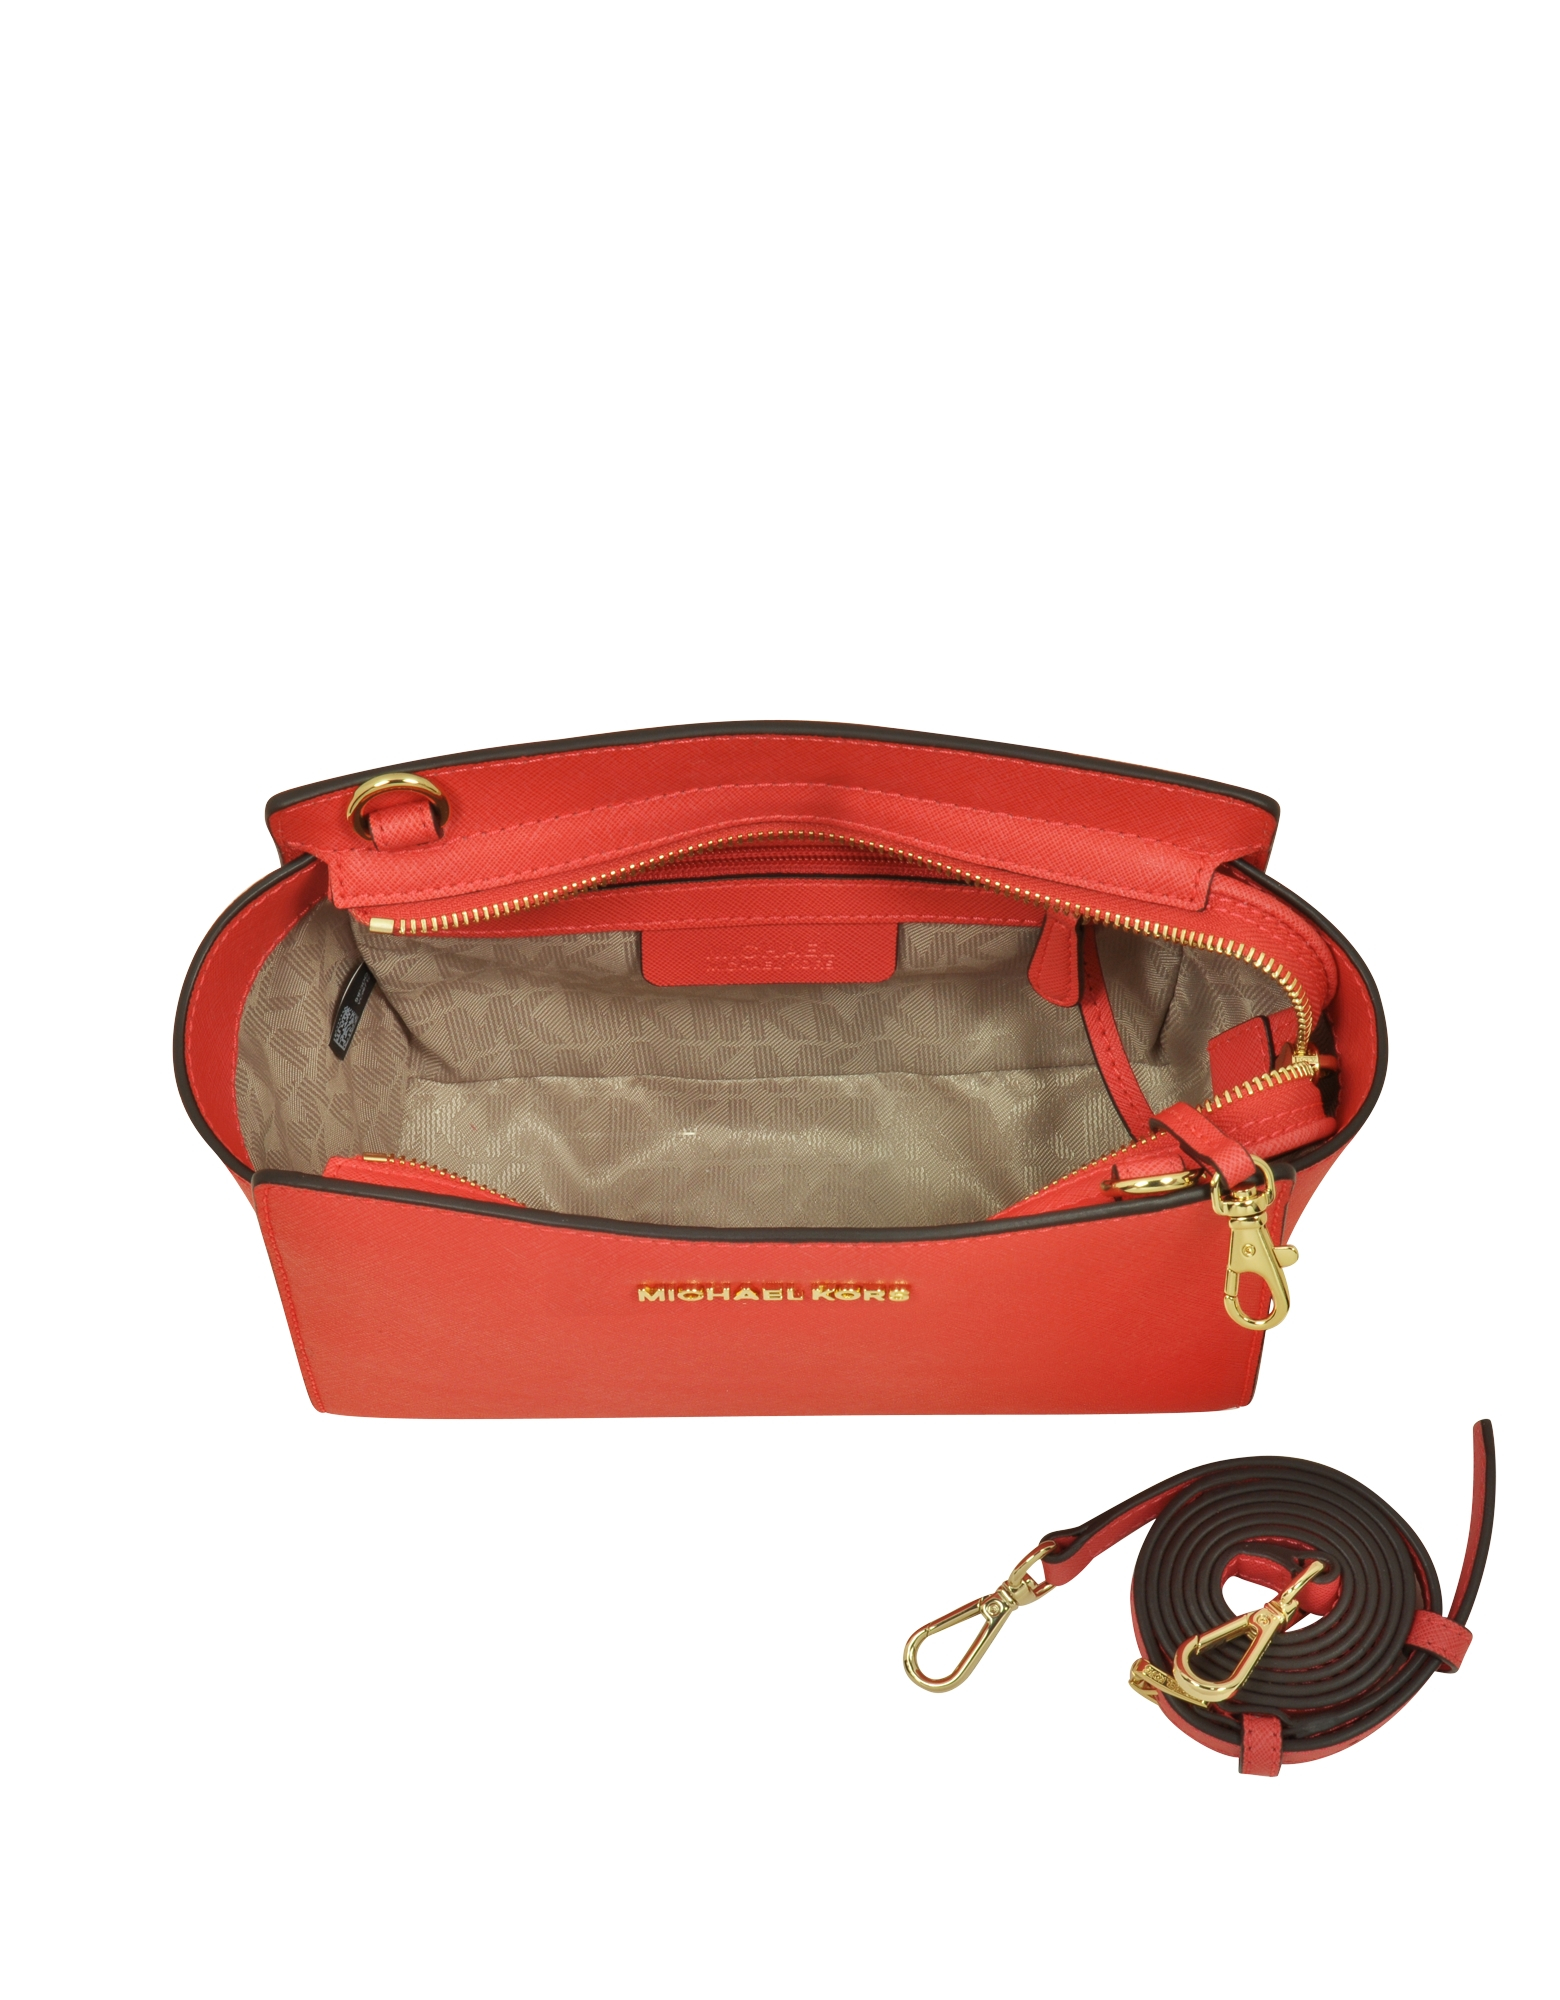 409f6f9c8648d0 ... promo code for michael kors selma medium coral reef saffiano leather  messenger bag 51b36 25325